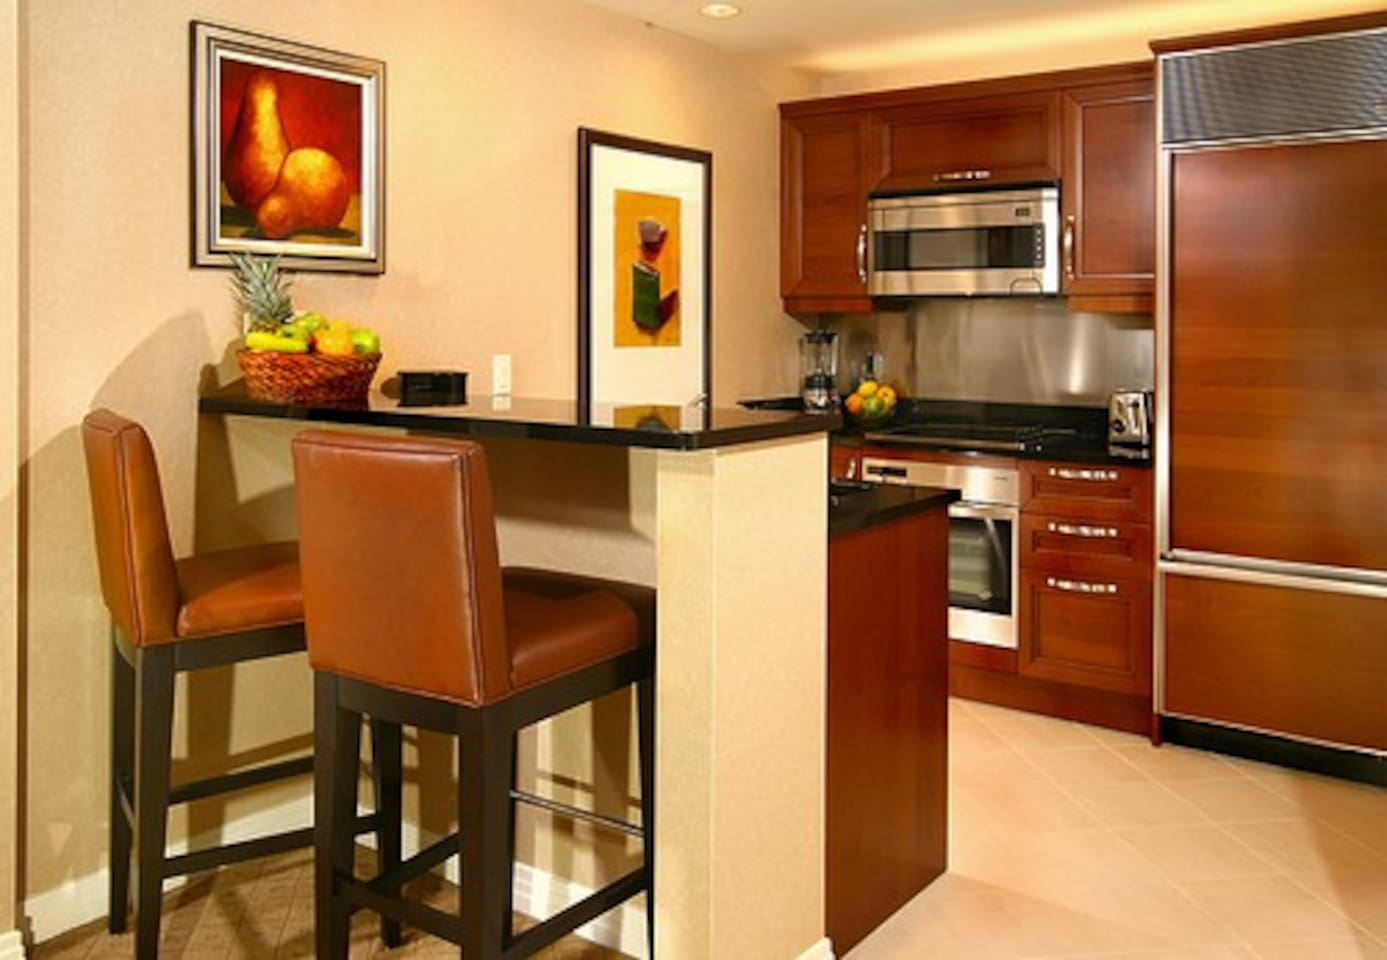 Mgm Grand Signature One Bedroom Balcony Suite. One Bedroom Balcony Suite Mgm Signature   cryp us